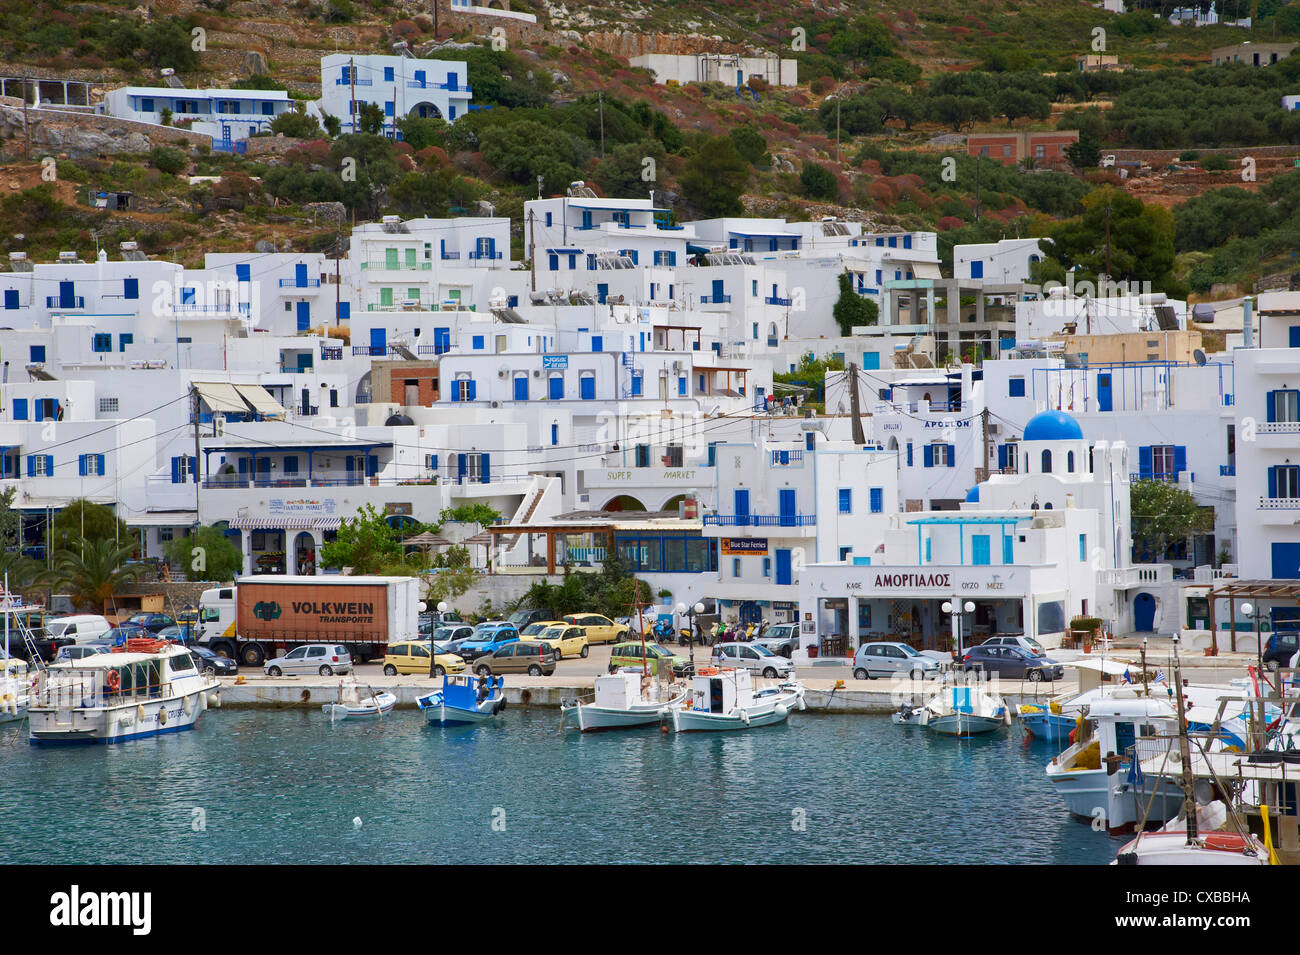 Aigiali town and harbour, Amorgos, Cyclades, Aegean, Greek Islands, Greece, Europe - Stock Image